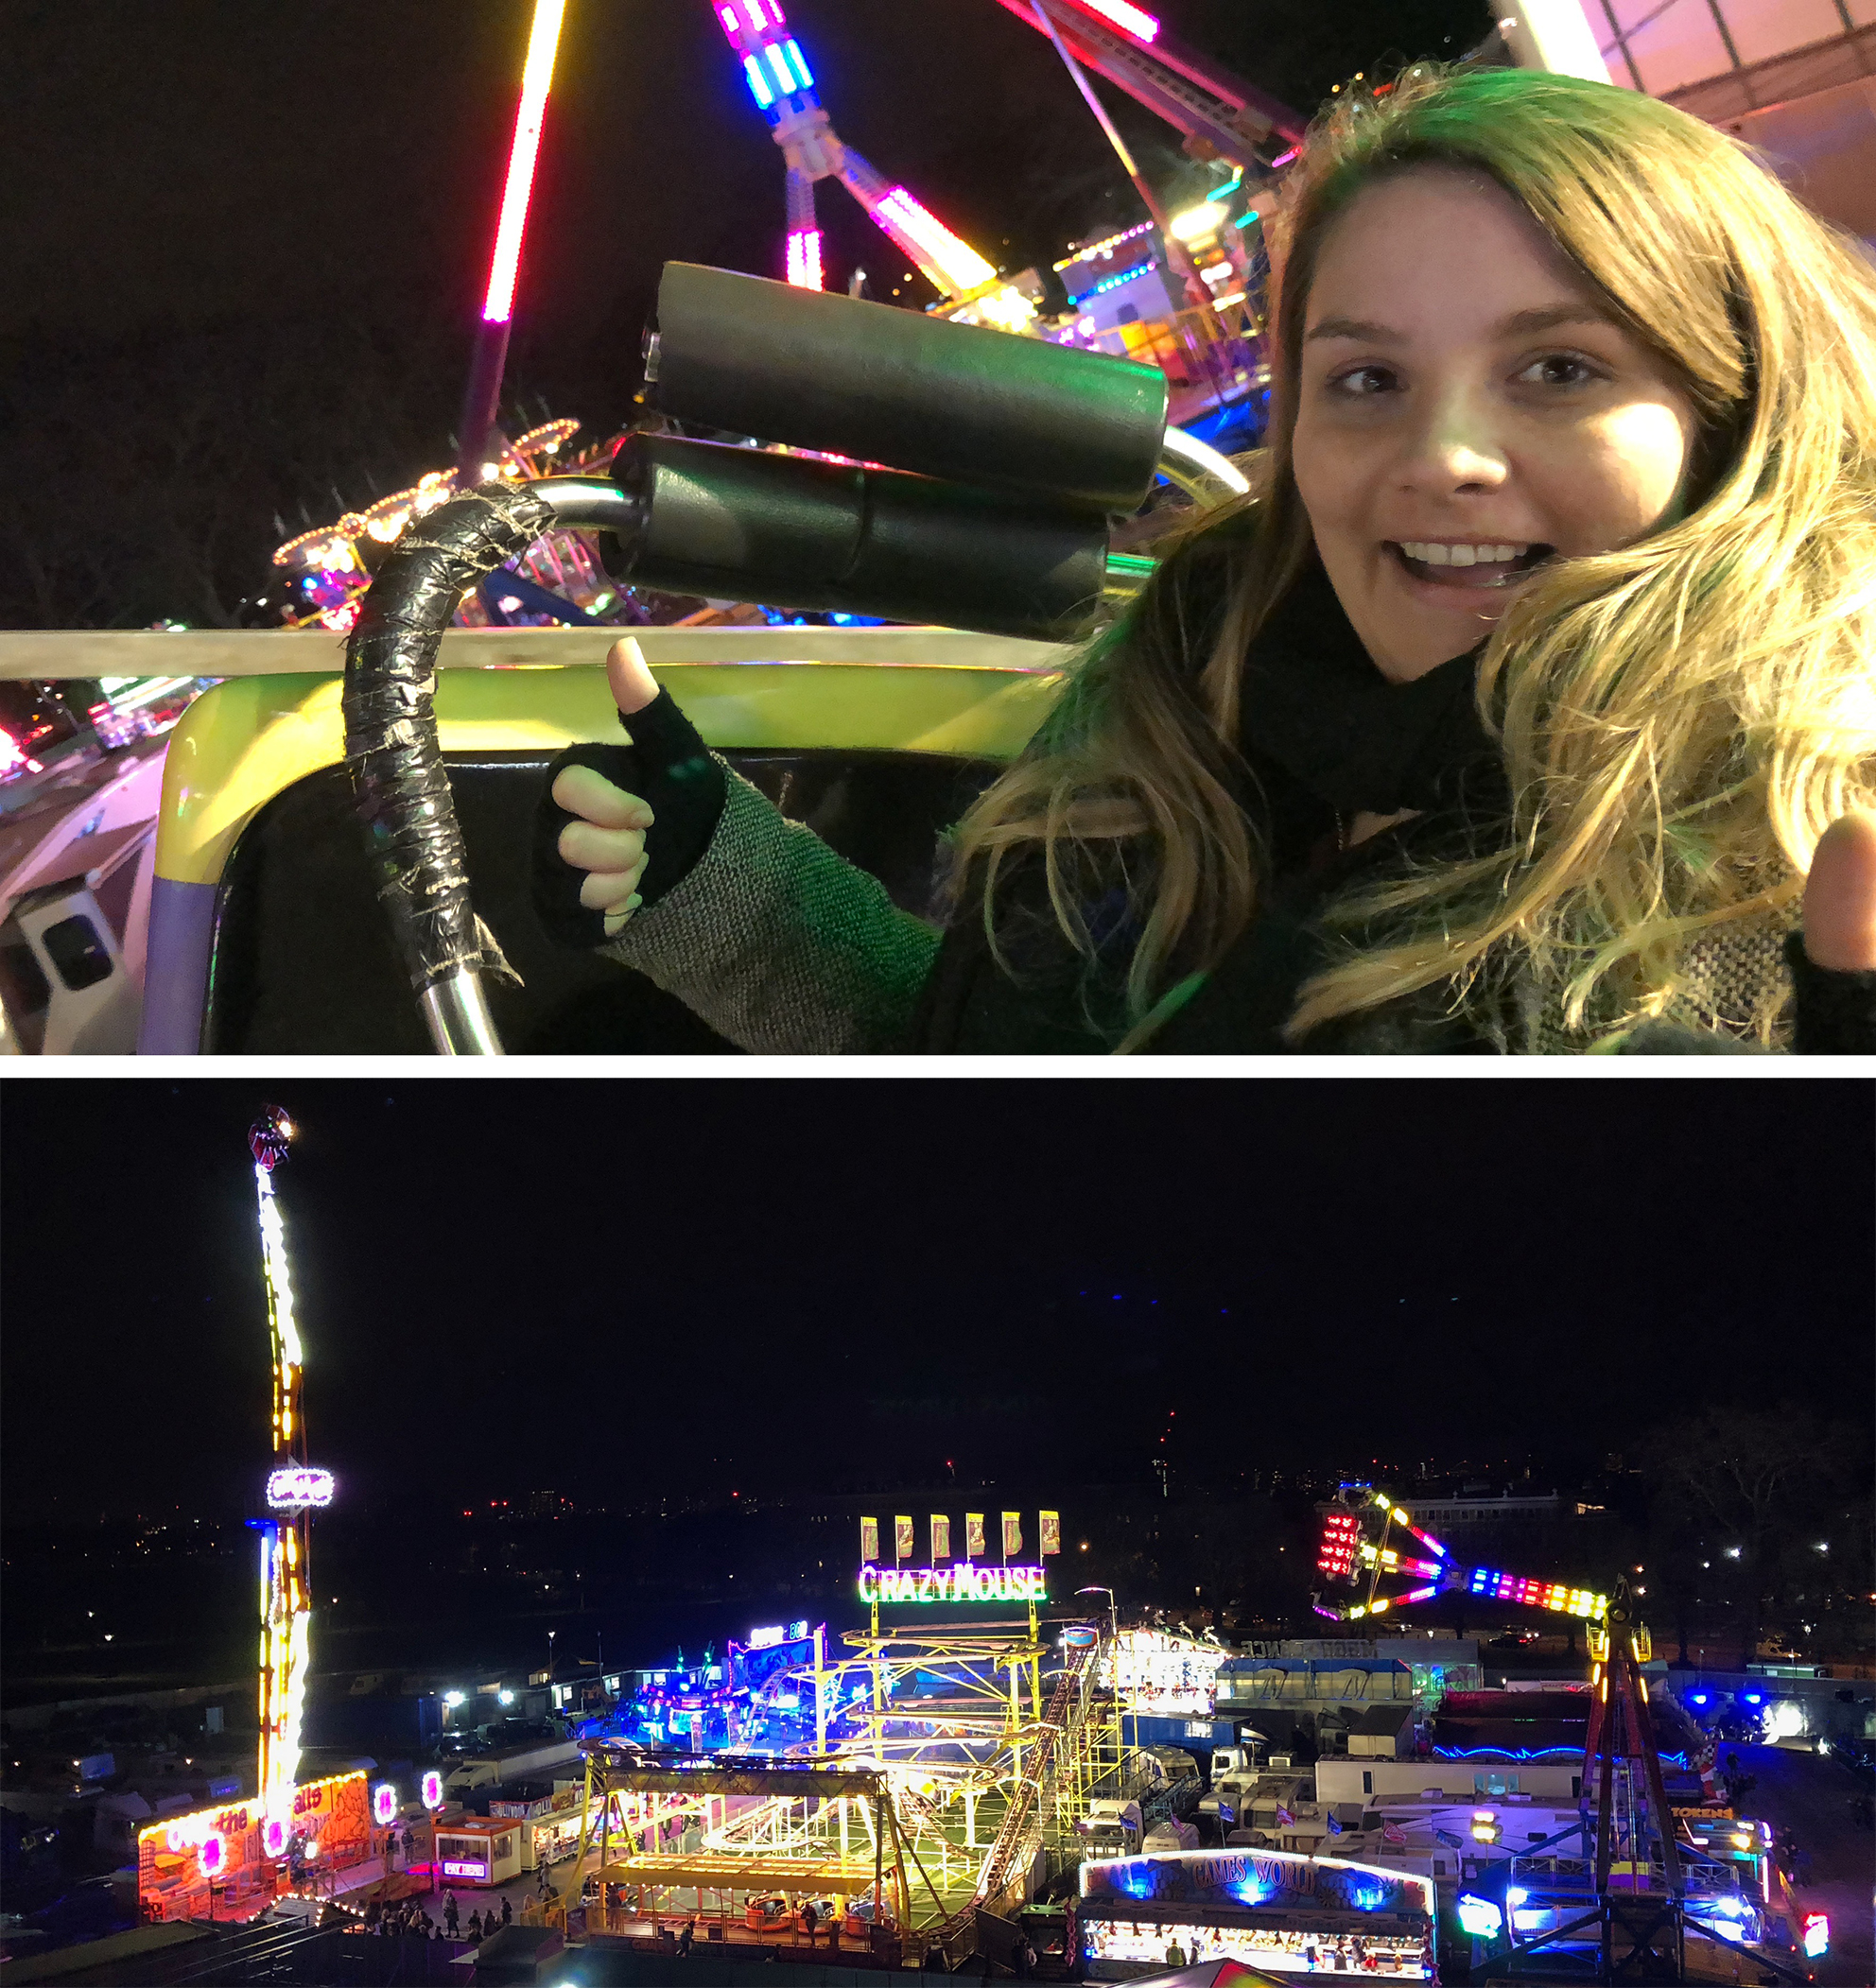 My friend Chan looking a little terrified on the way up the Crazy Mouse rollercoaster, and the view over Winterville fairground area from the Big Wheel